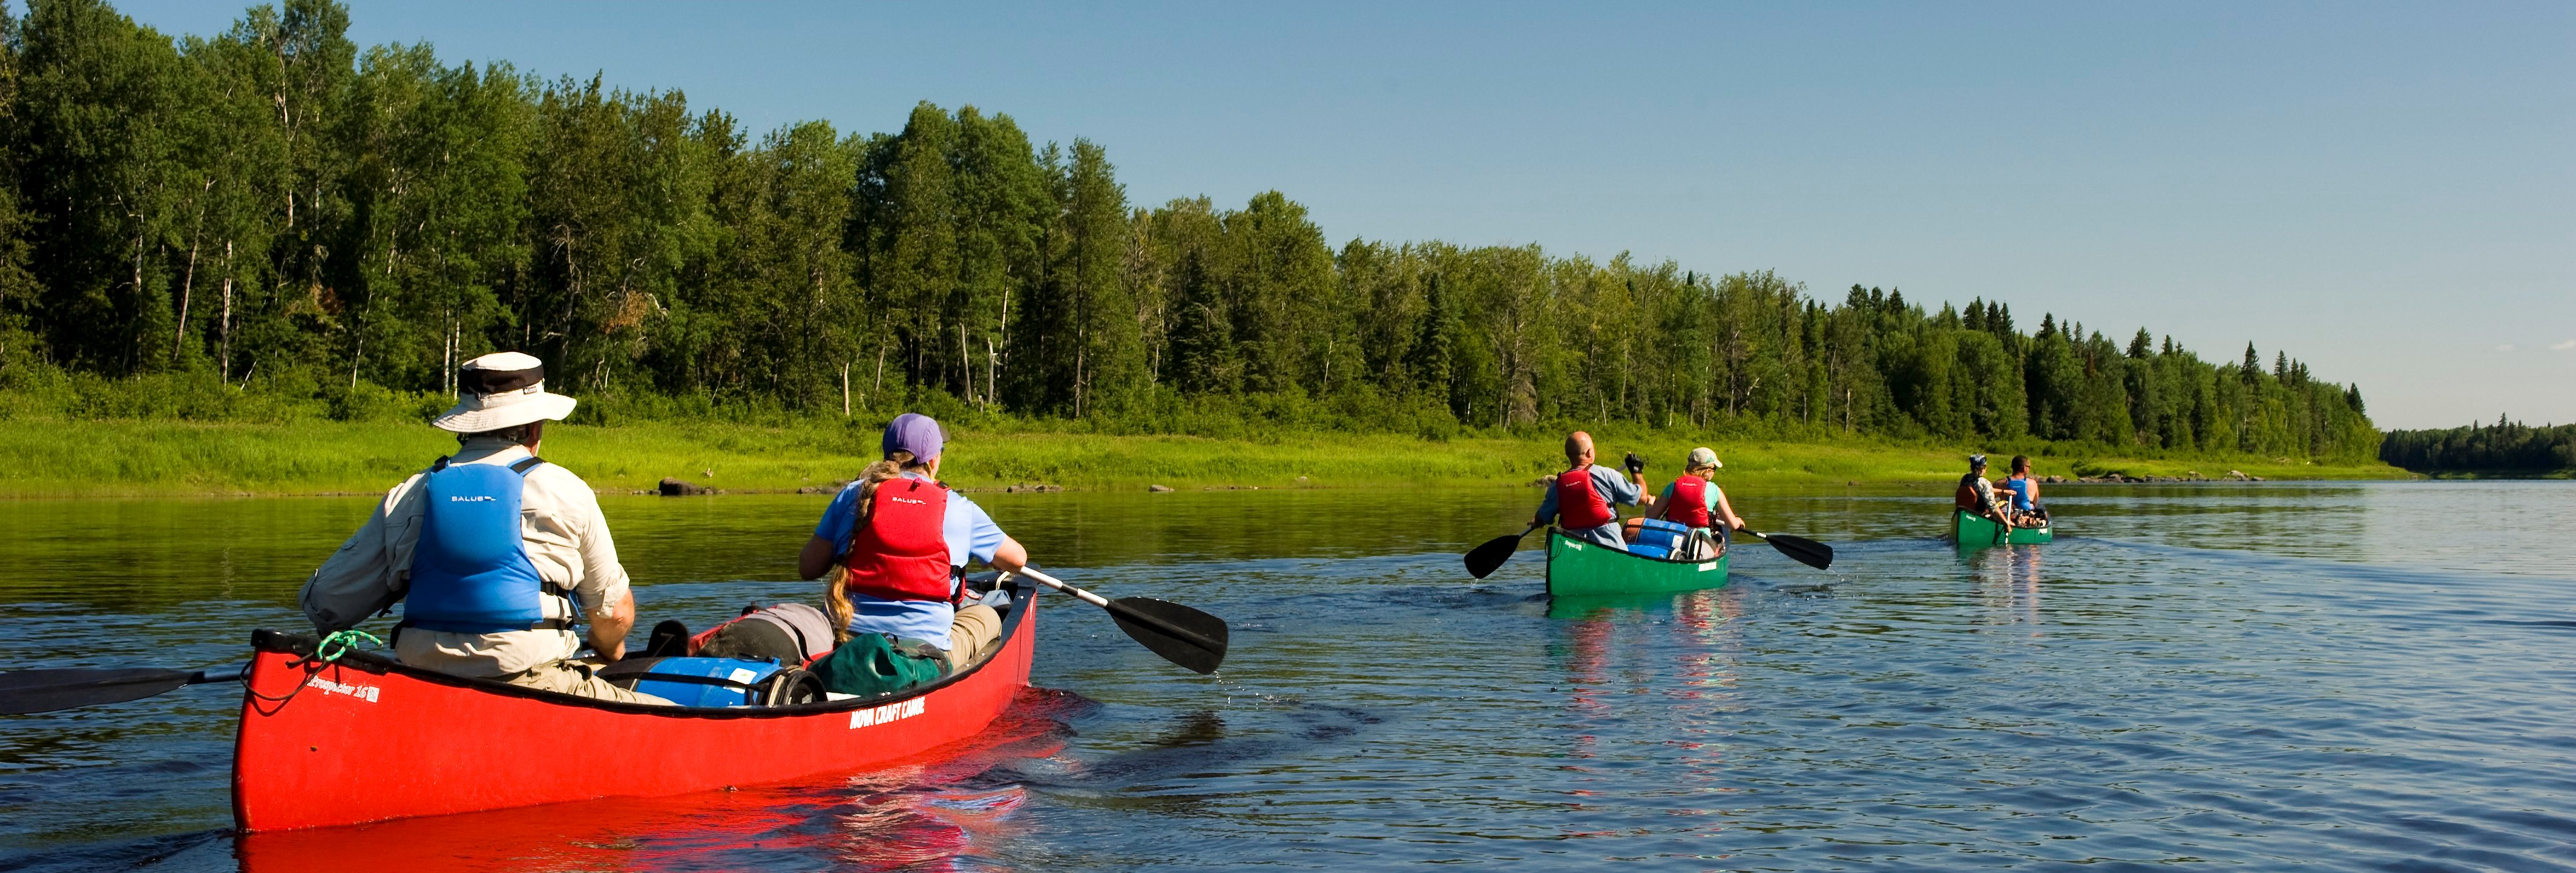 Canoe trip, photo credit Ontario Tourism